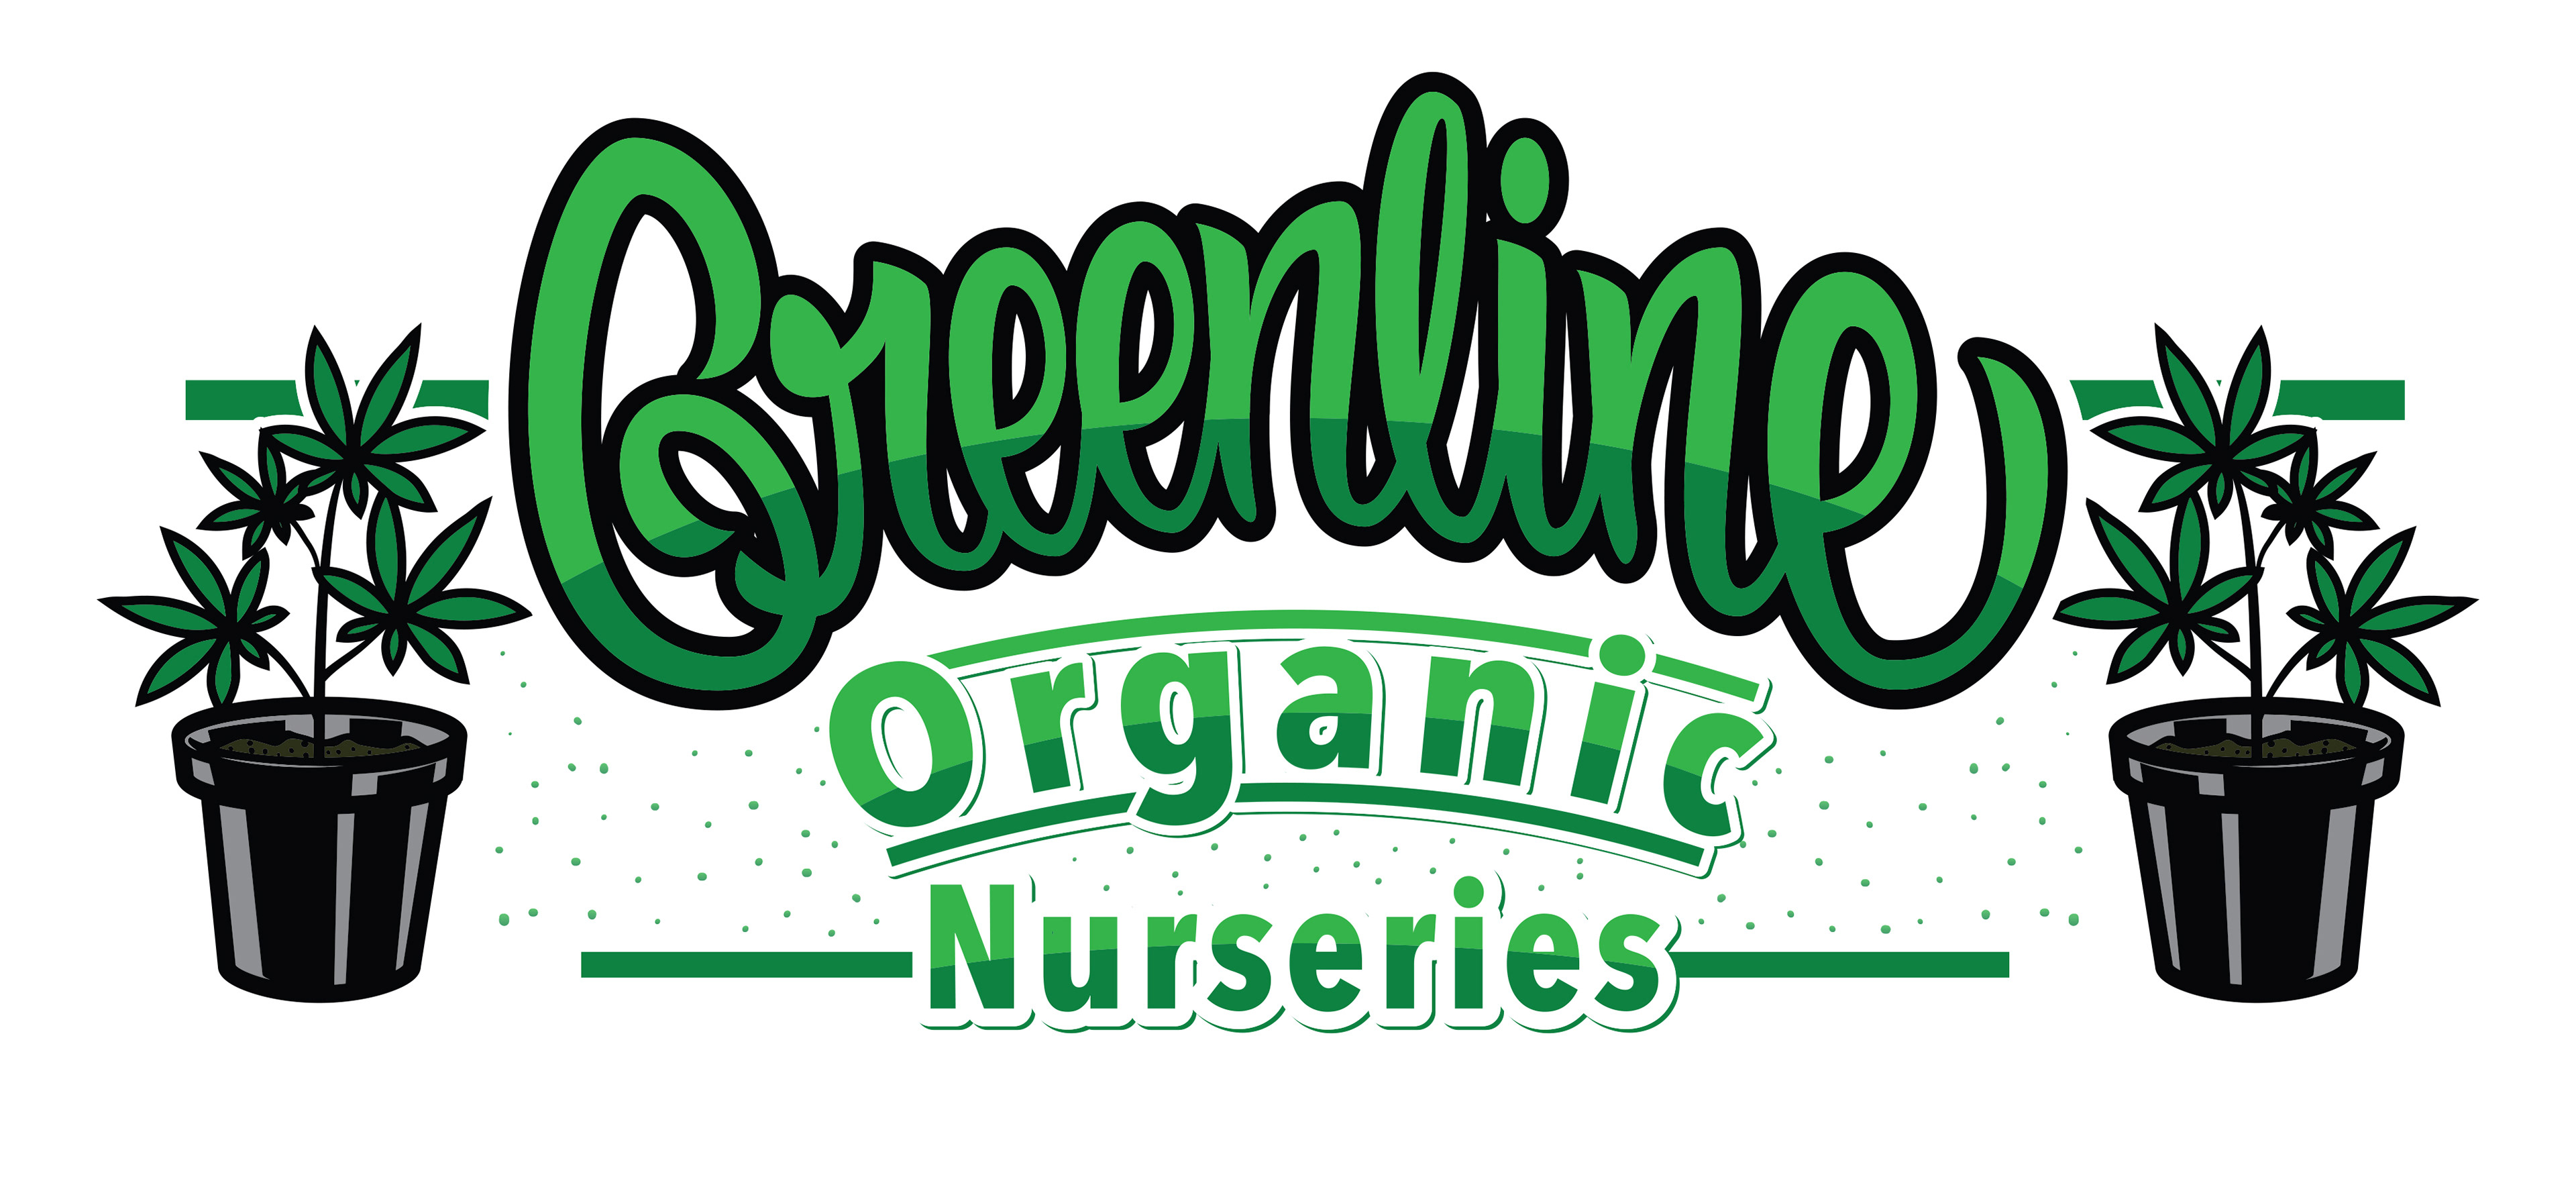 Greenline Organic Nurseries